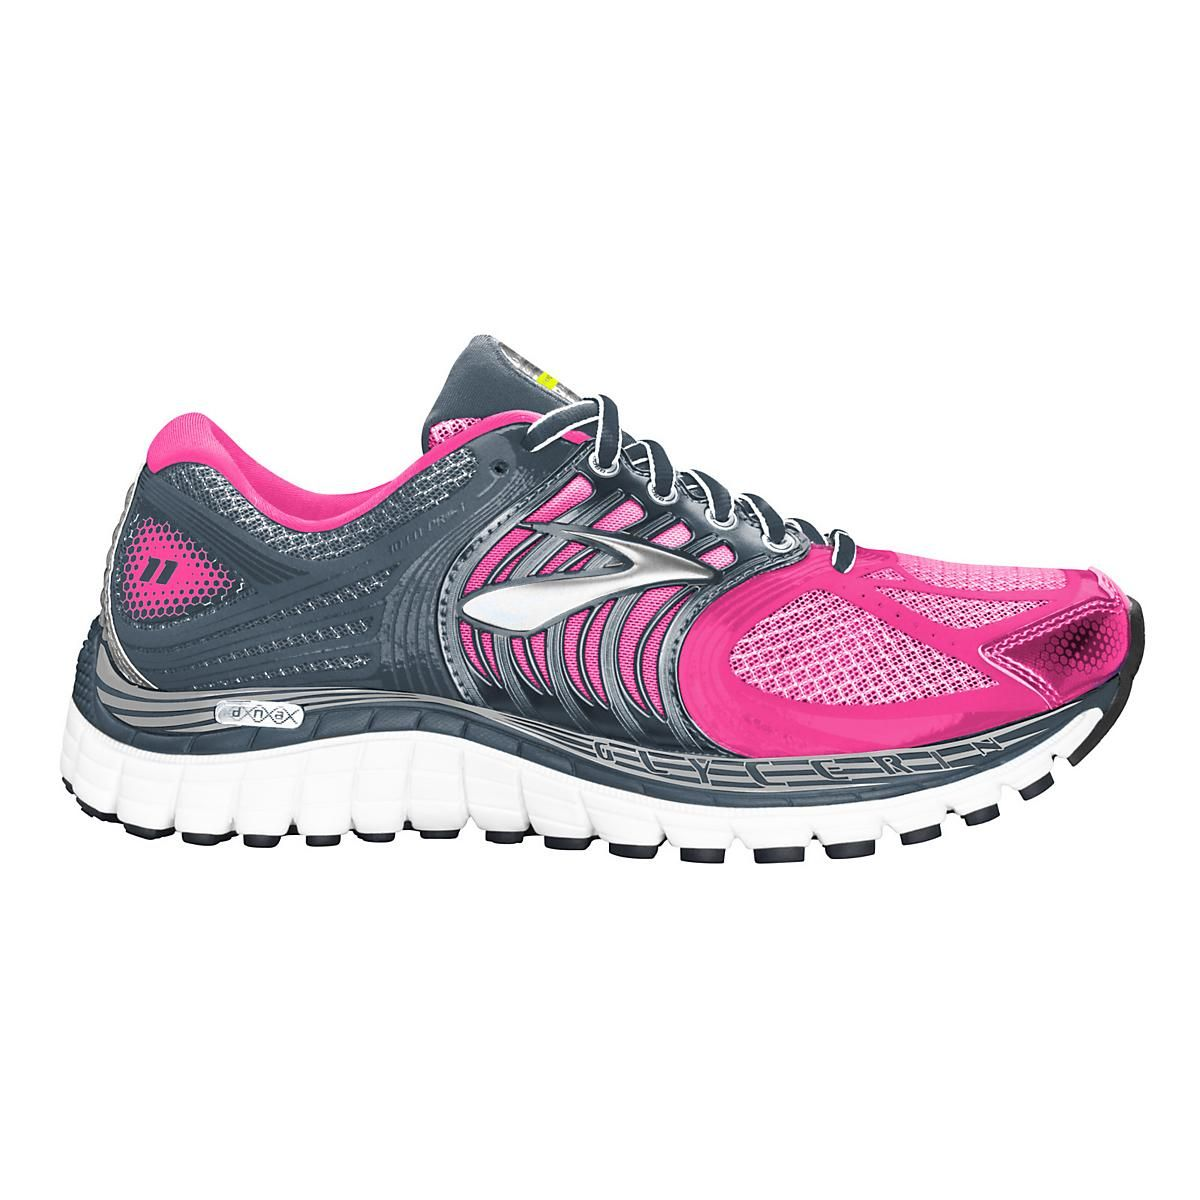 Glycerin 11 in 2020 Workout shoes, Best running shoes